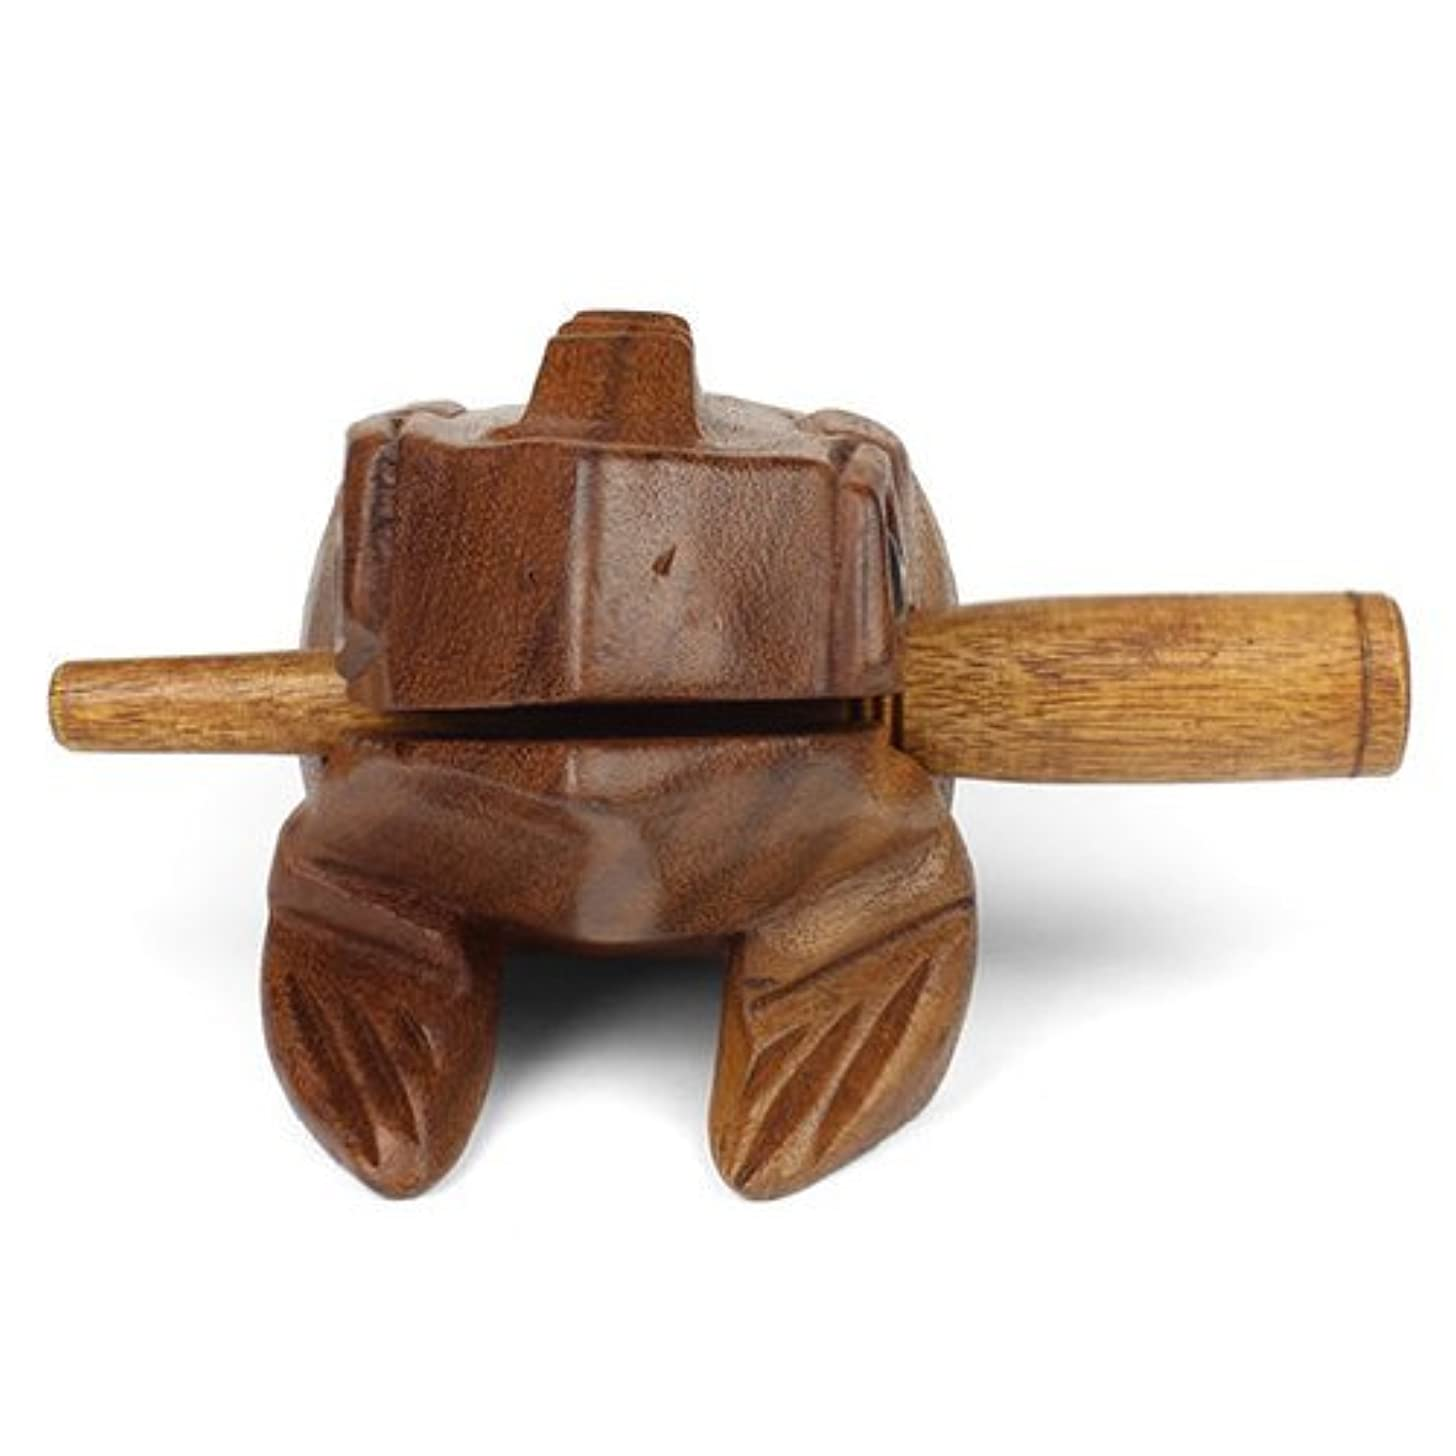 Medium Wooden Croaking Frog Güiro - Fair Trade Percussion Instrument - Fun for all Ages - Free Postage!